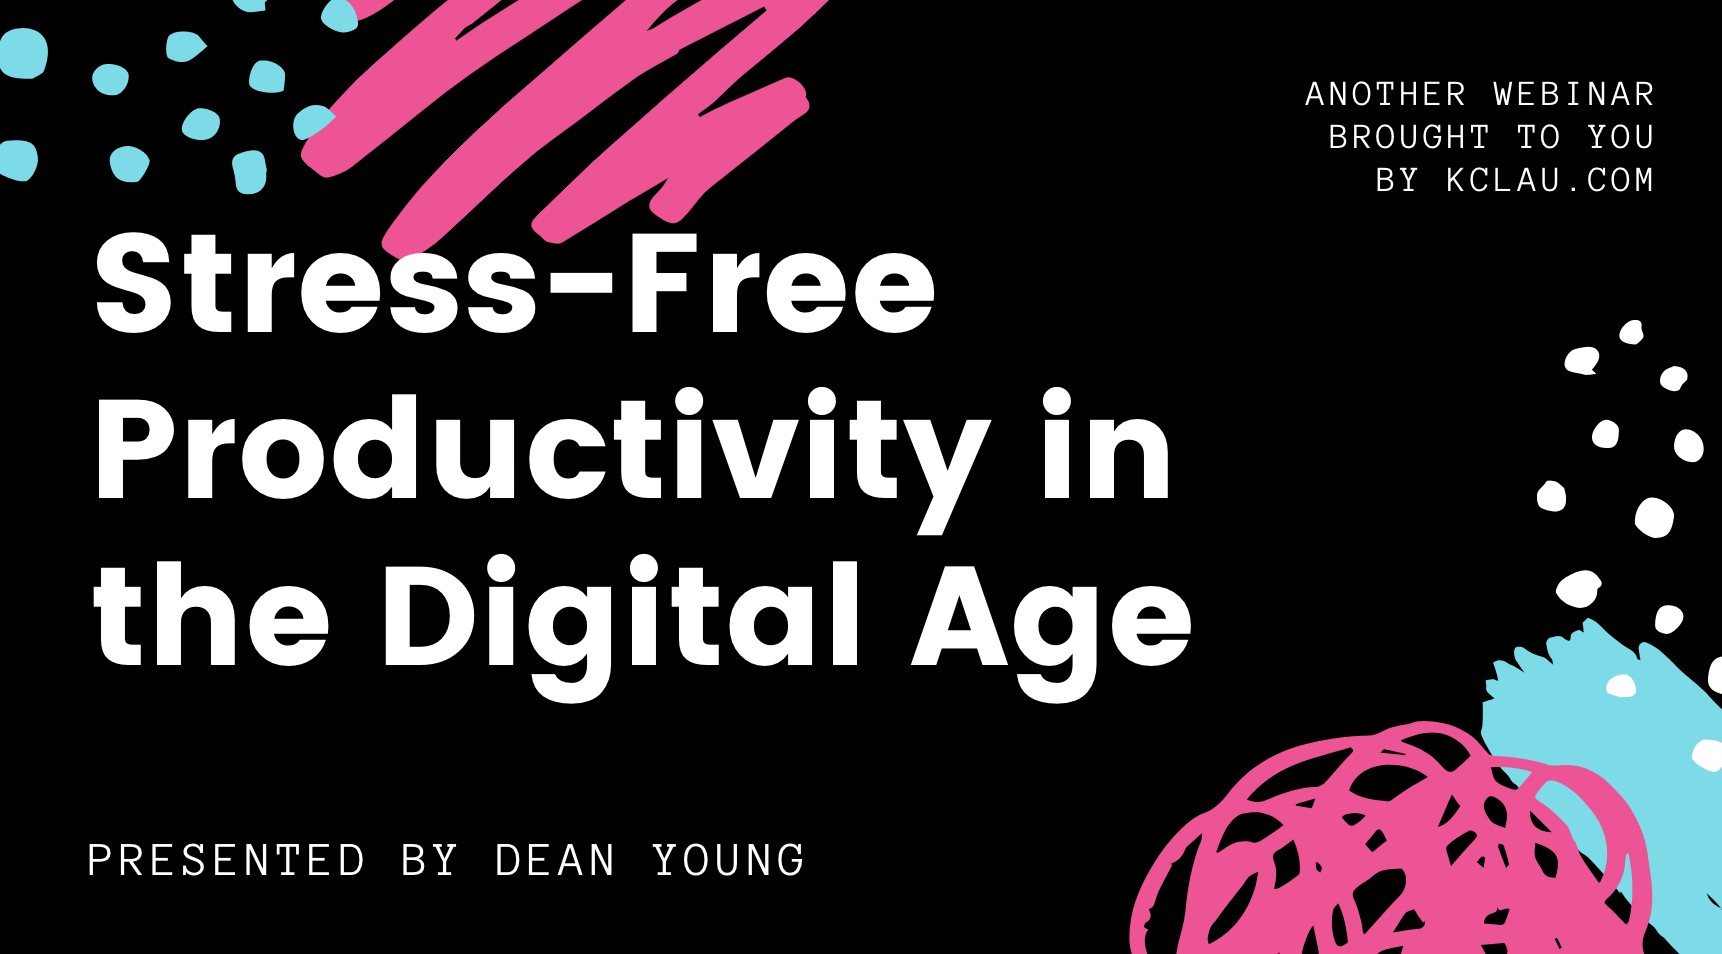 Stress-Free Productivity in the Digital Age